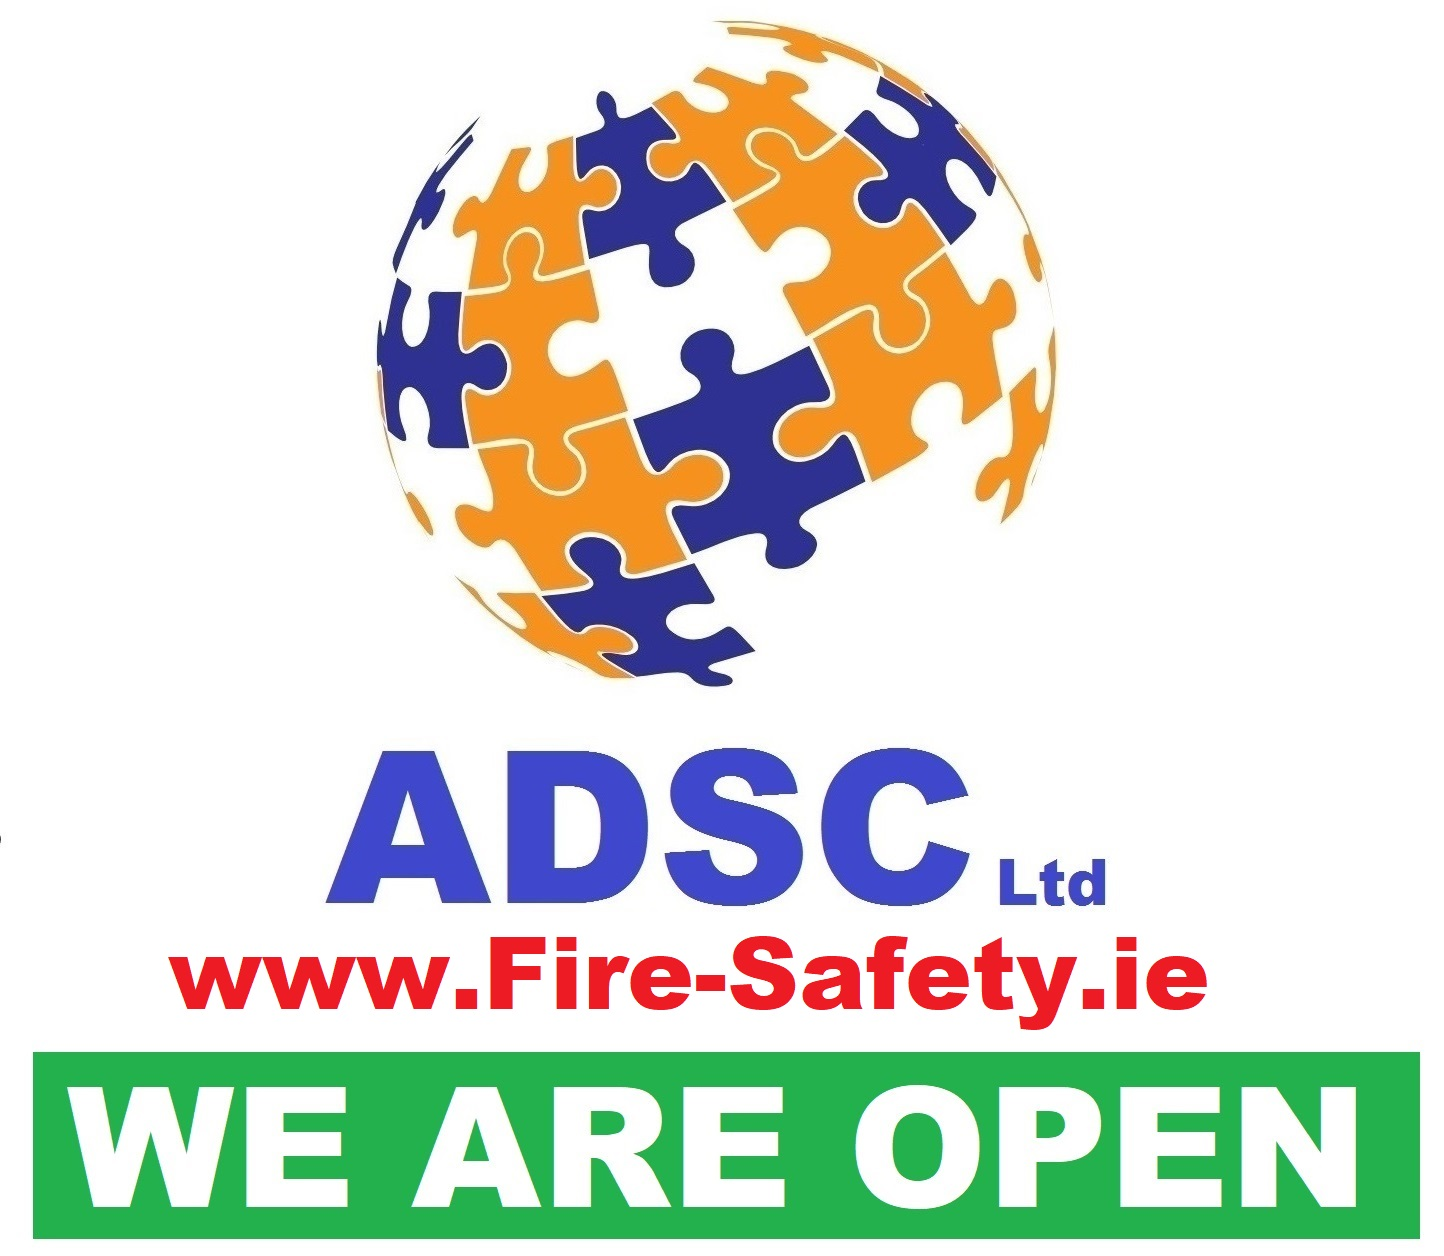 fire-safety.ie